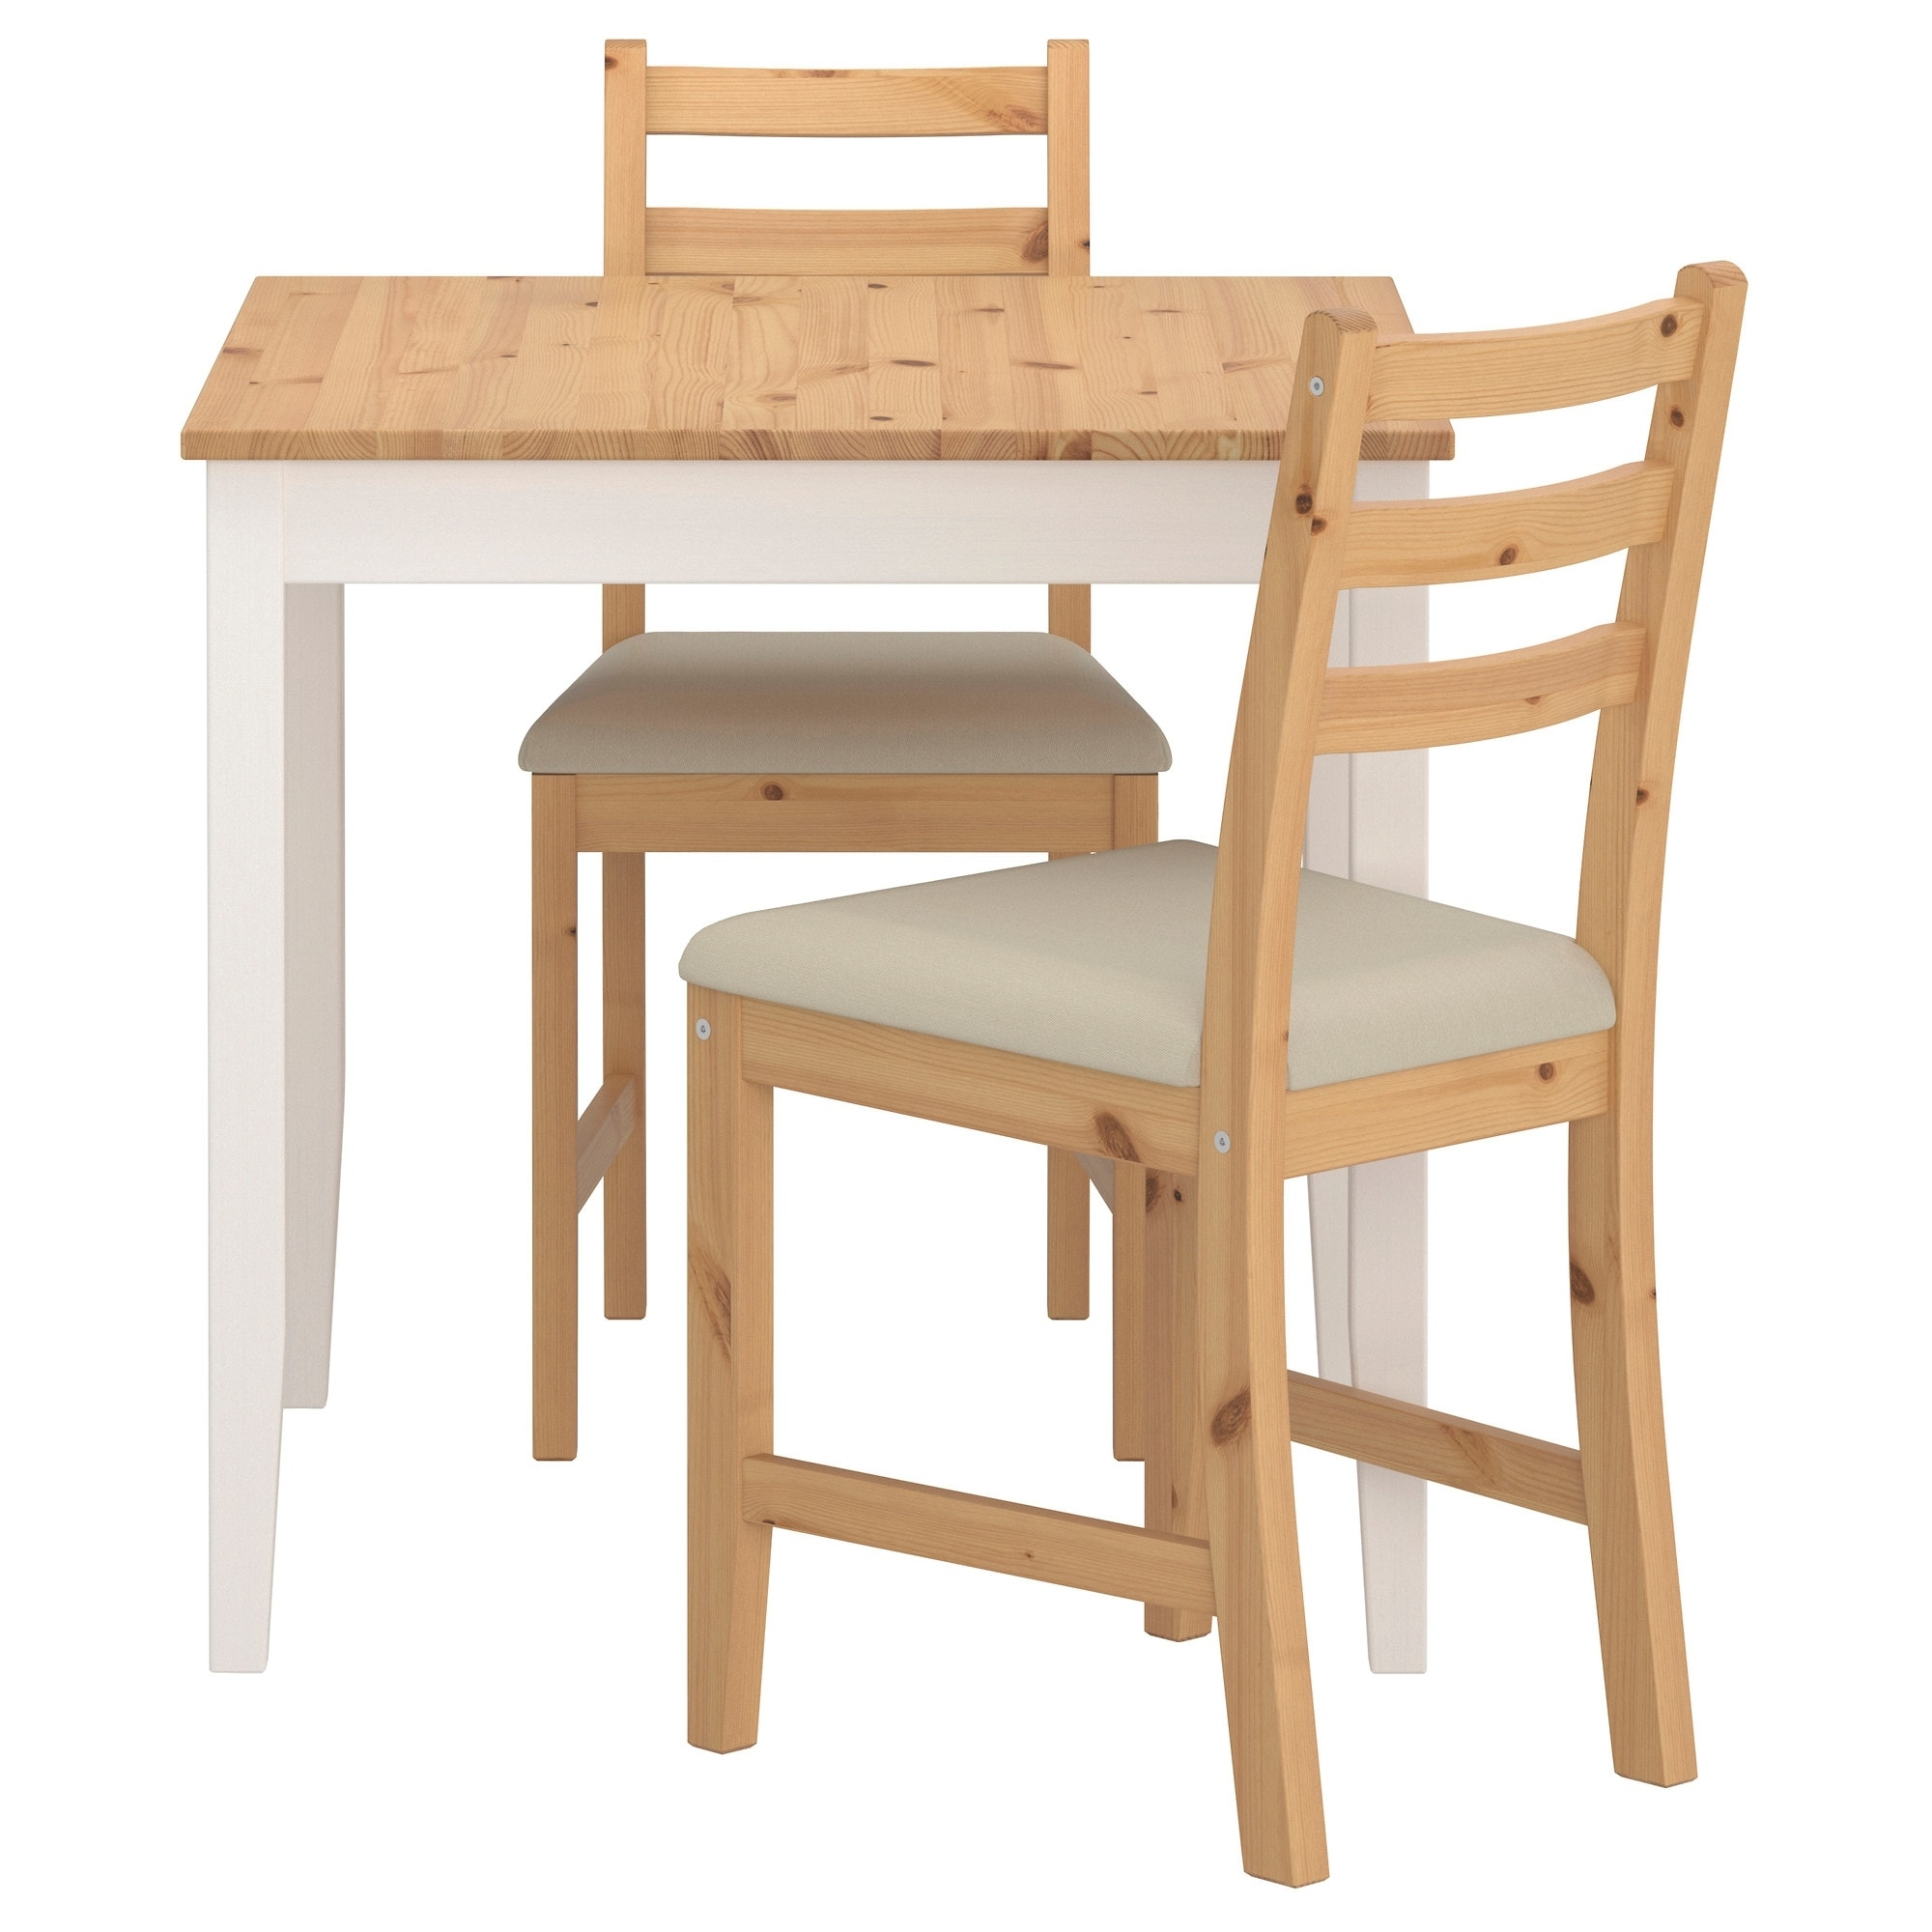 Ikea Intended For Two Seater Dining Tables And Chairs (Gallery 1 of 25)